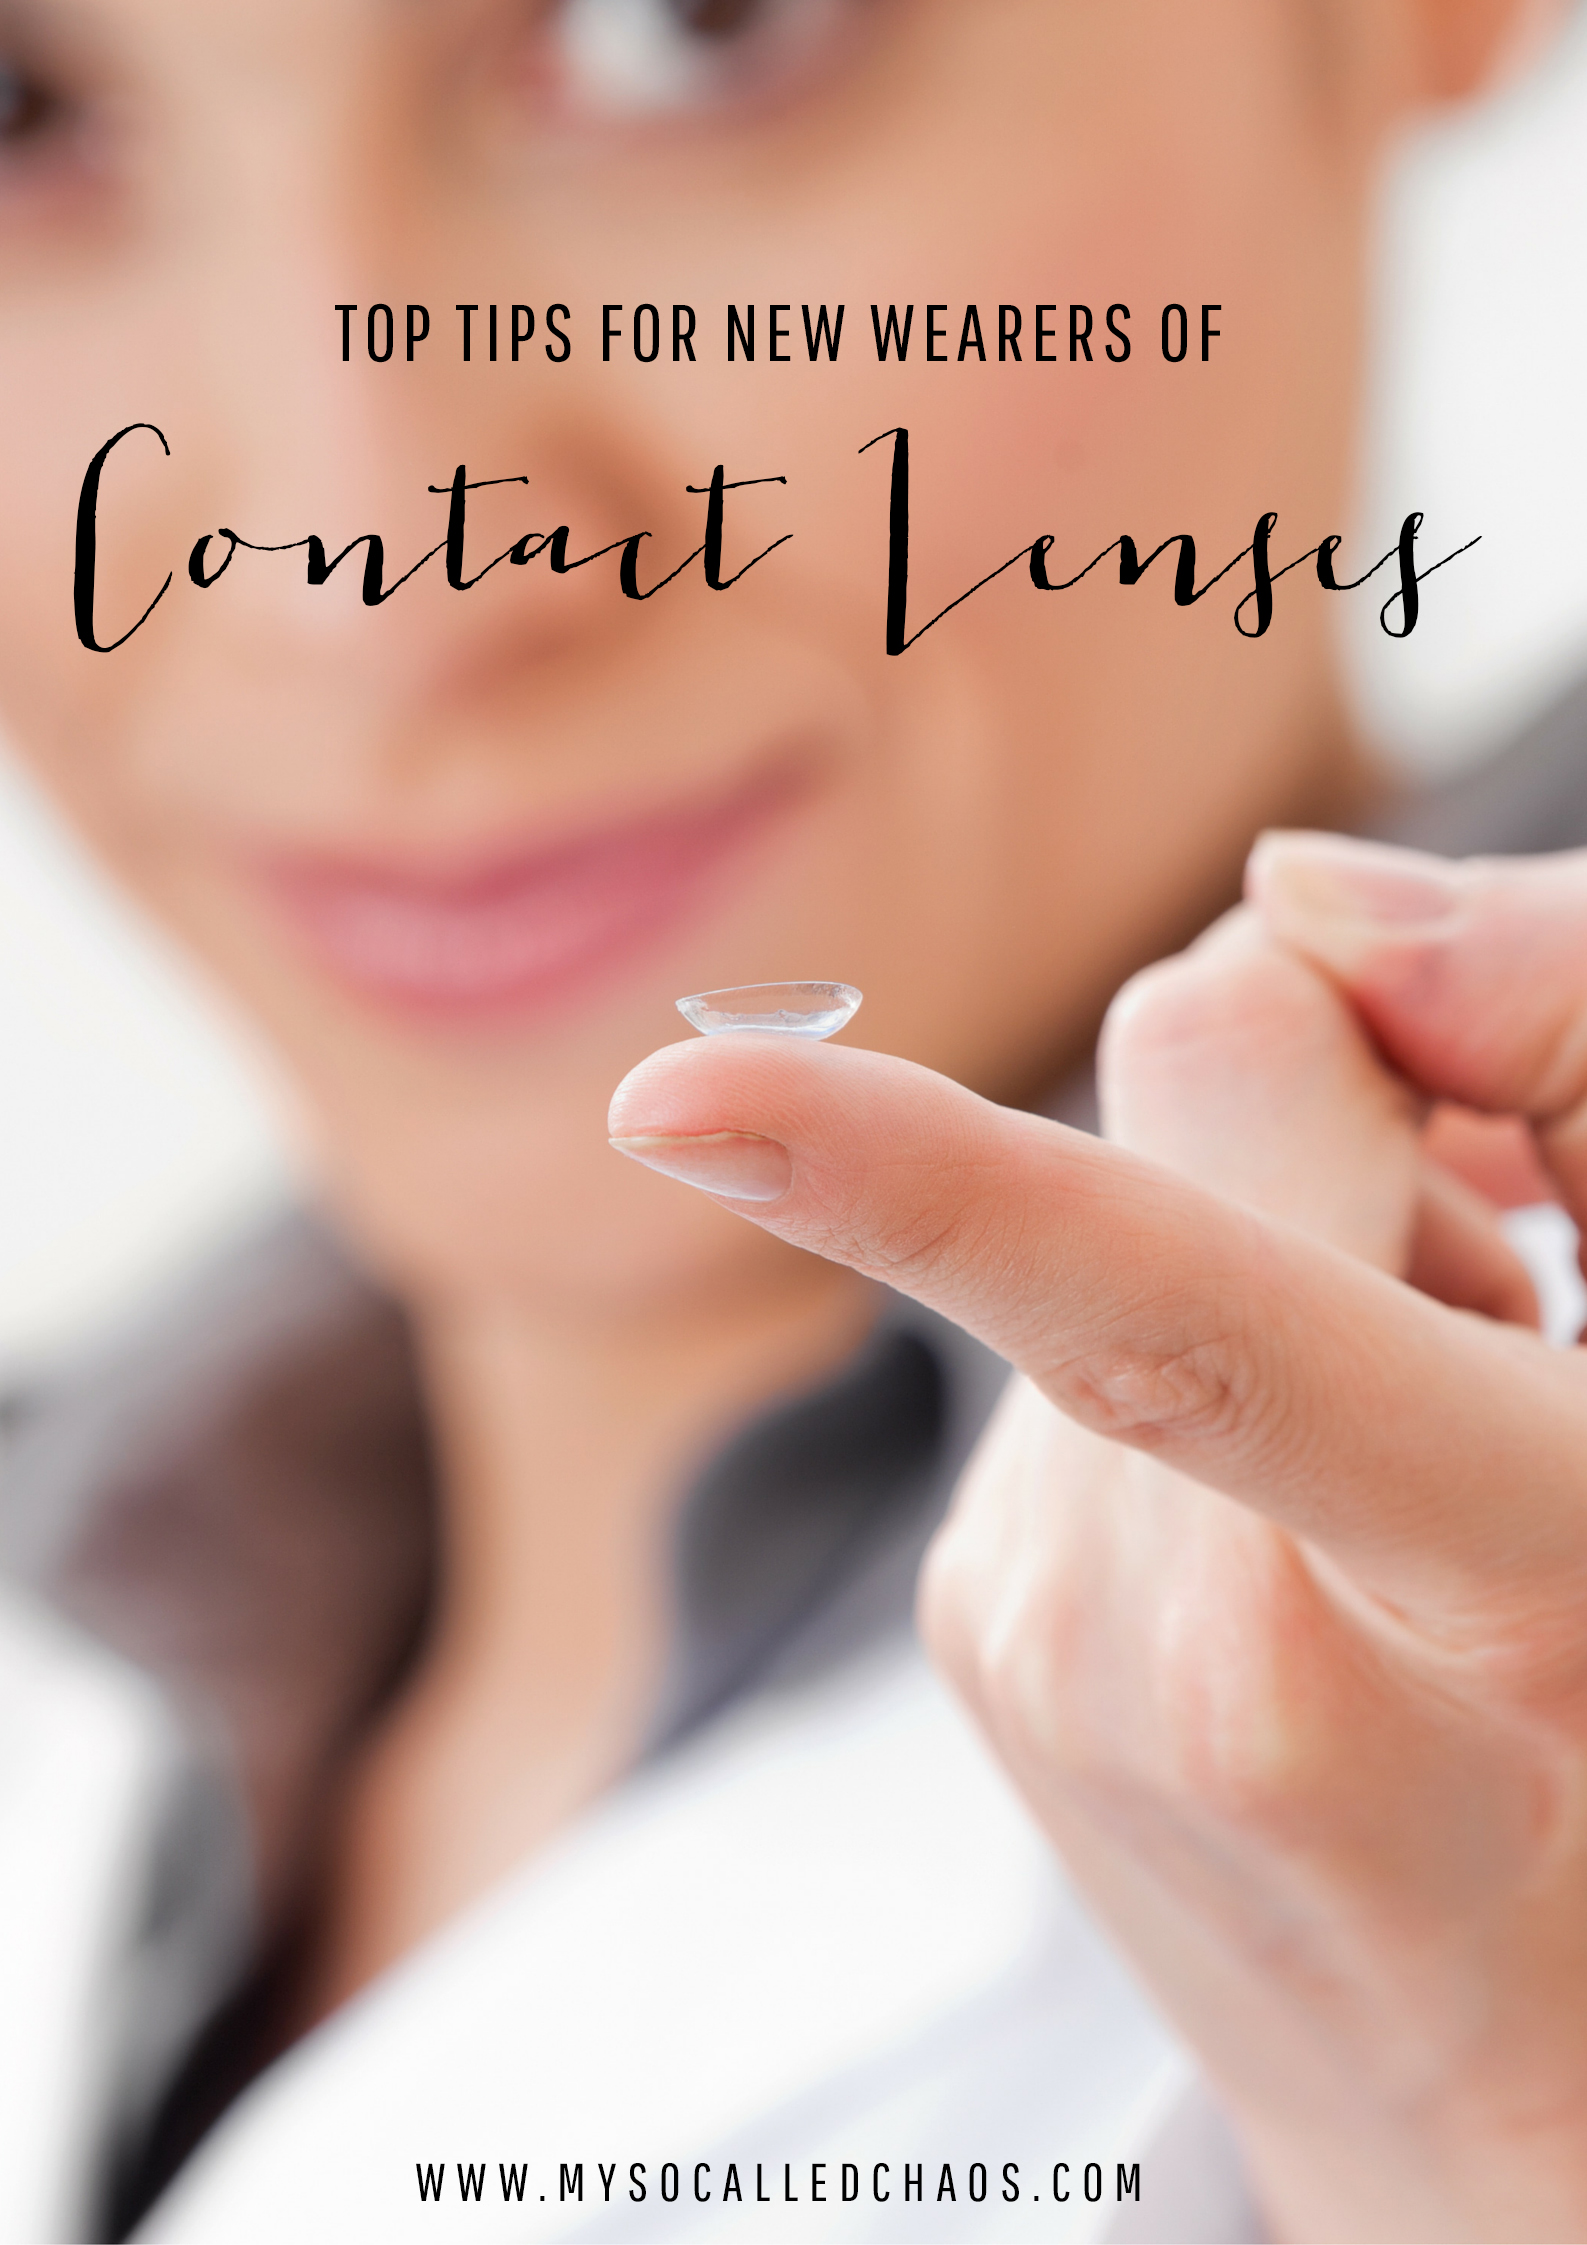 Top Tips for New Contact Lens Wearers